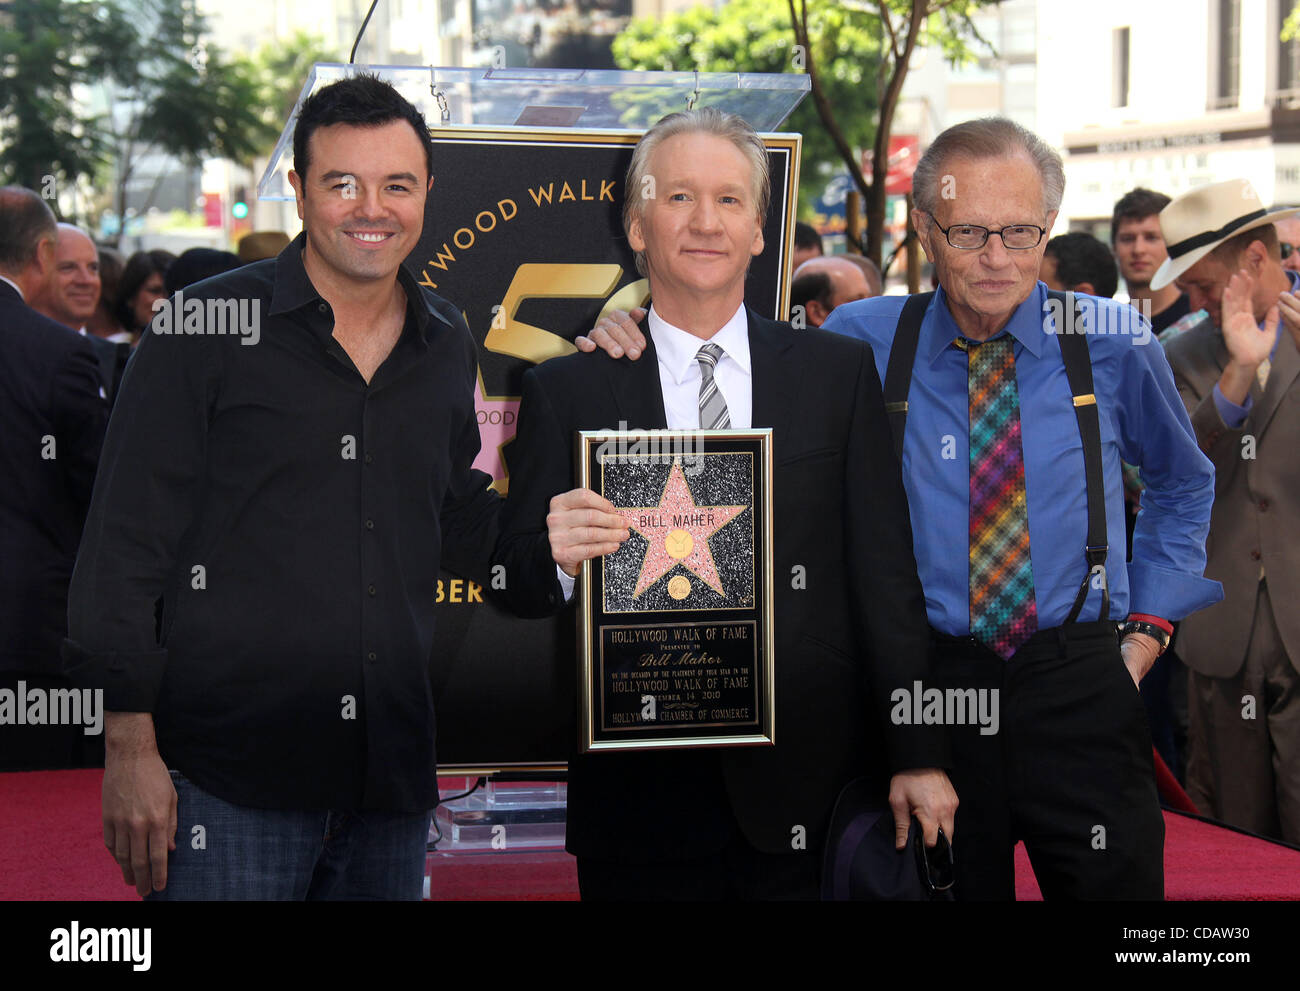 Sep 14, 2010 - Hollywoodwood, California, USA - LARRY KING & Actor SETH MACFARLANE joins BILL MAHER as he Receives Stock Photo